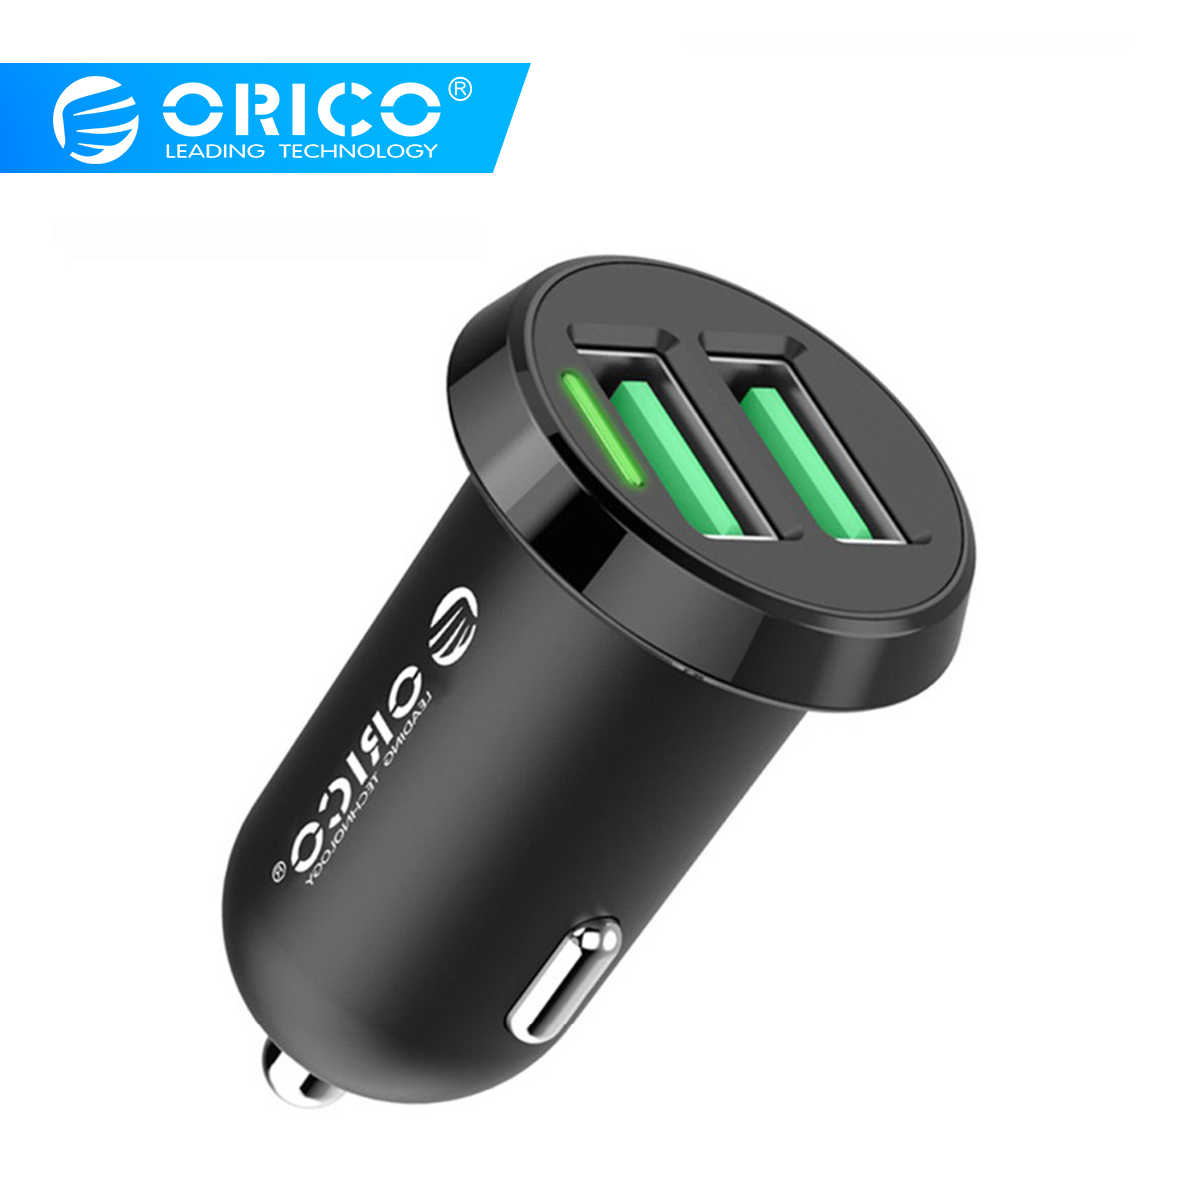 ORICO Dual USB Car Charger 2.4A Intelligent Output 17W Travel Charger for Mobile Phone Cigar Lighter DC 12-24V